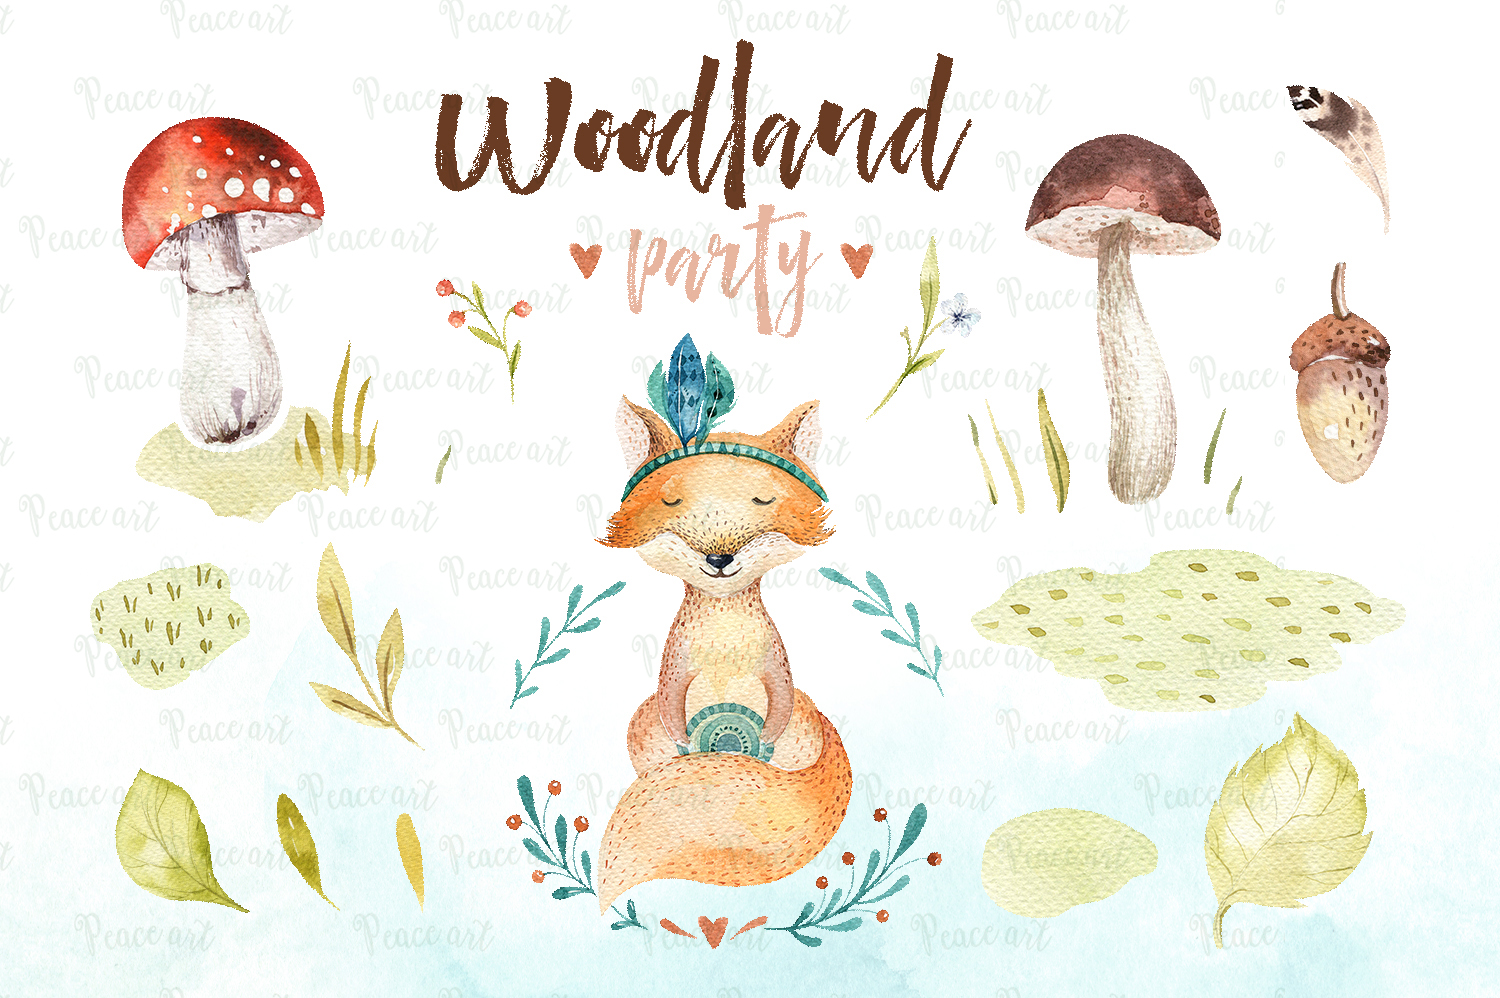 Woodland party I example image 4